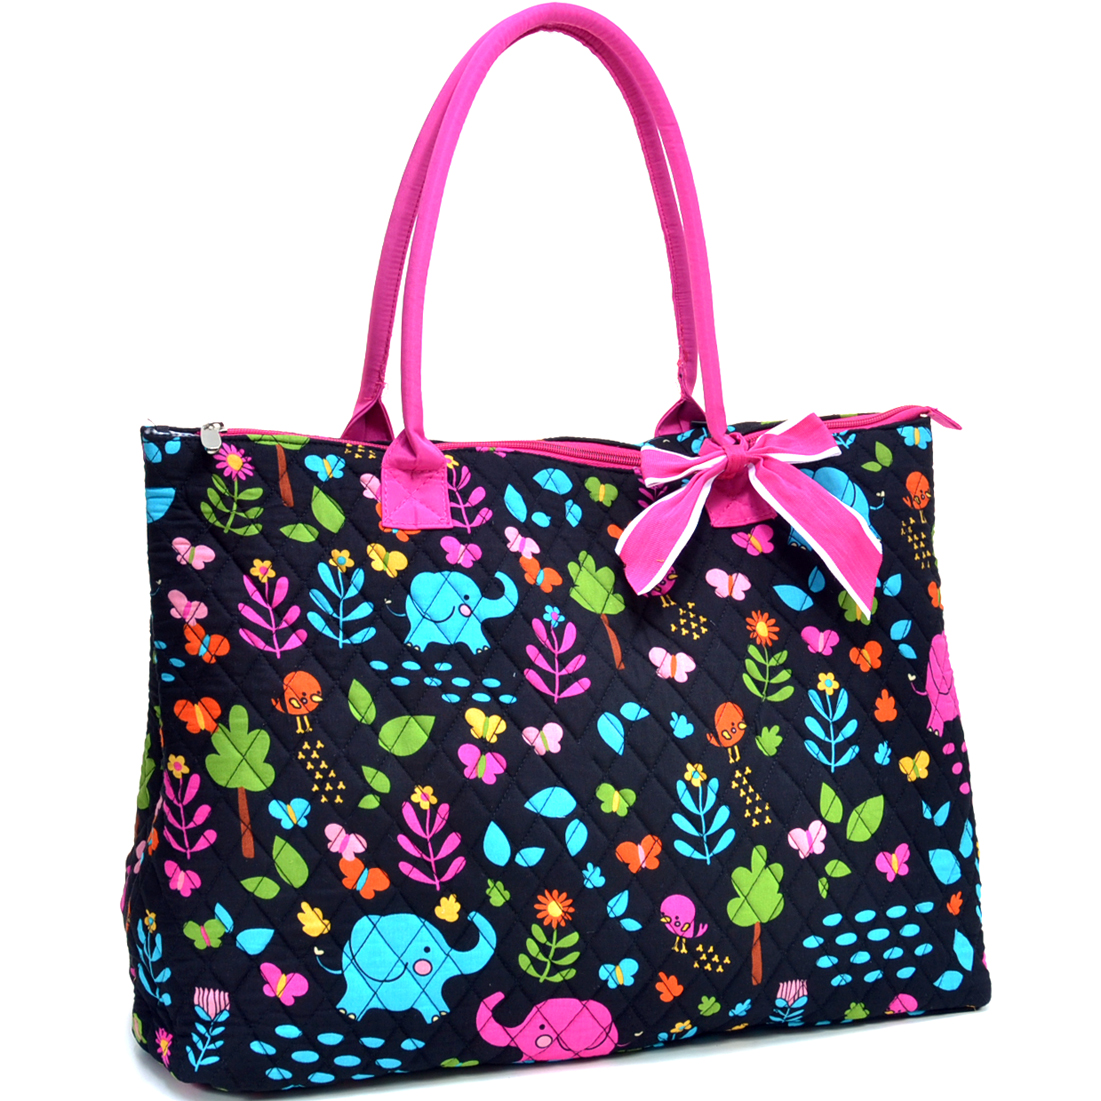 Sazy Bee Designs Elephant & Floral Print Quilted Cotton Tote Bag